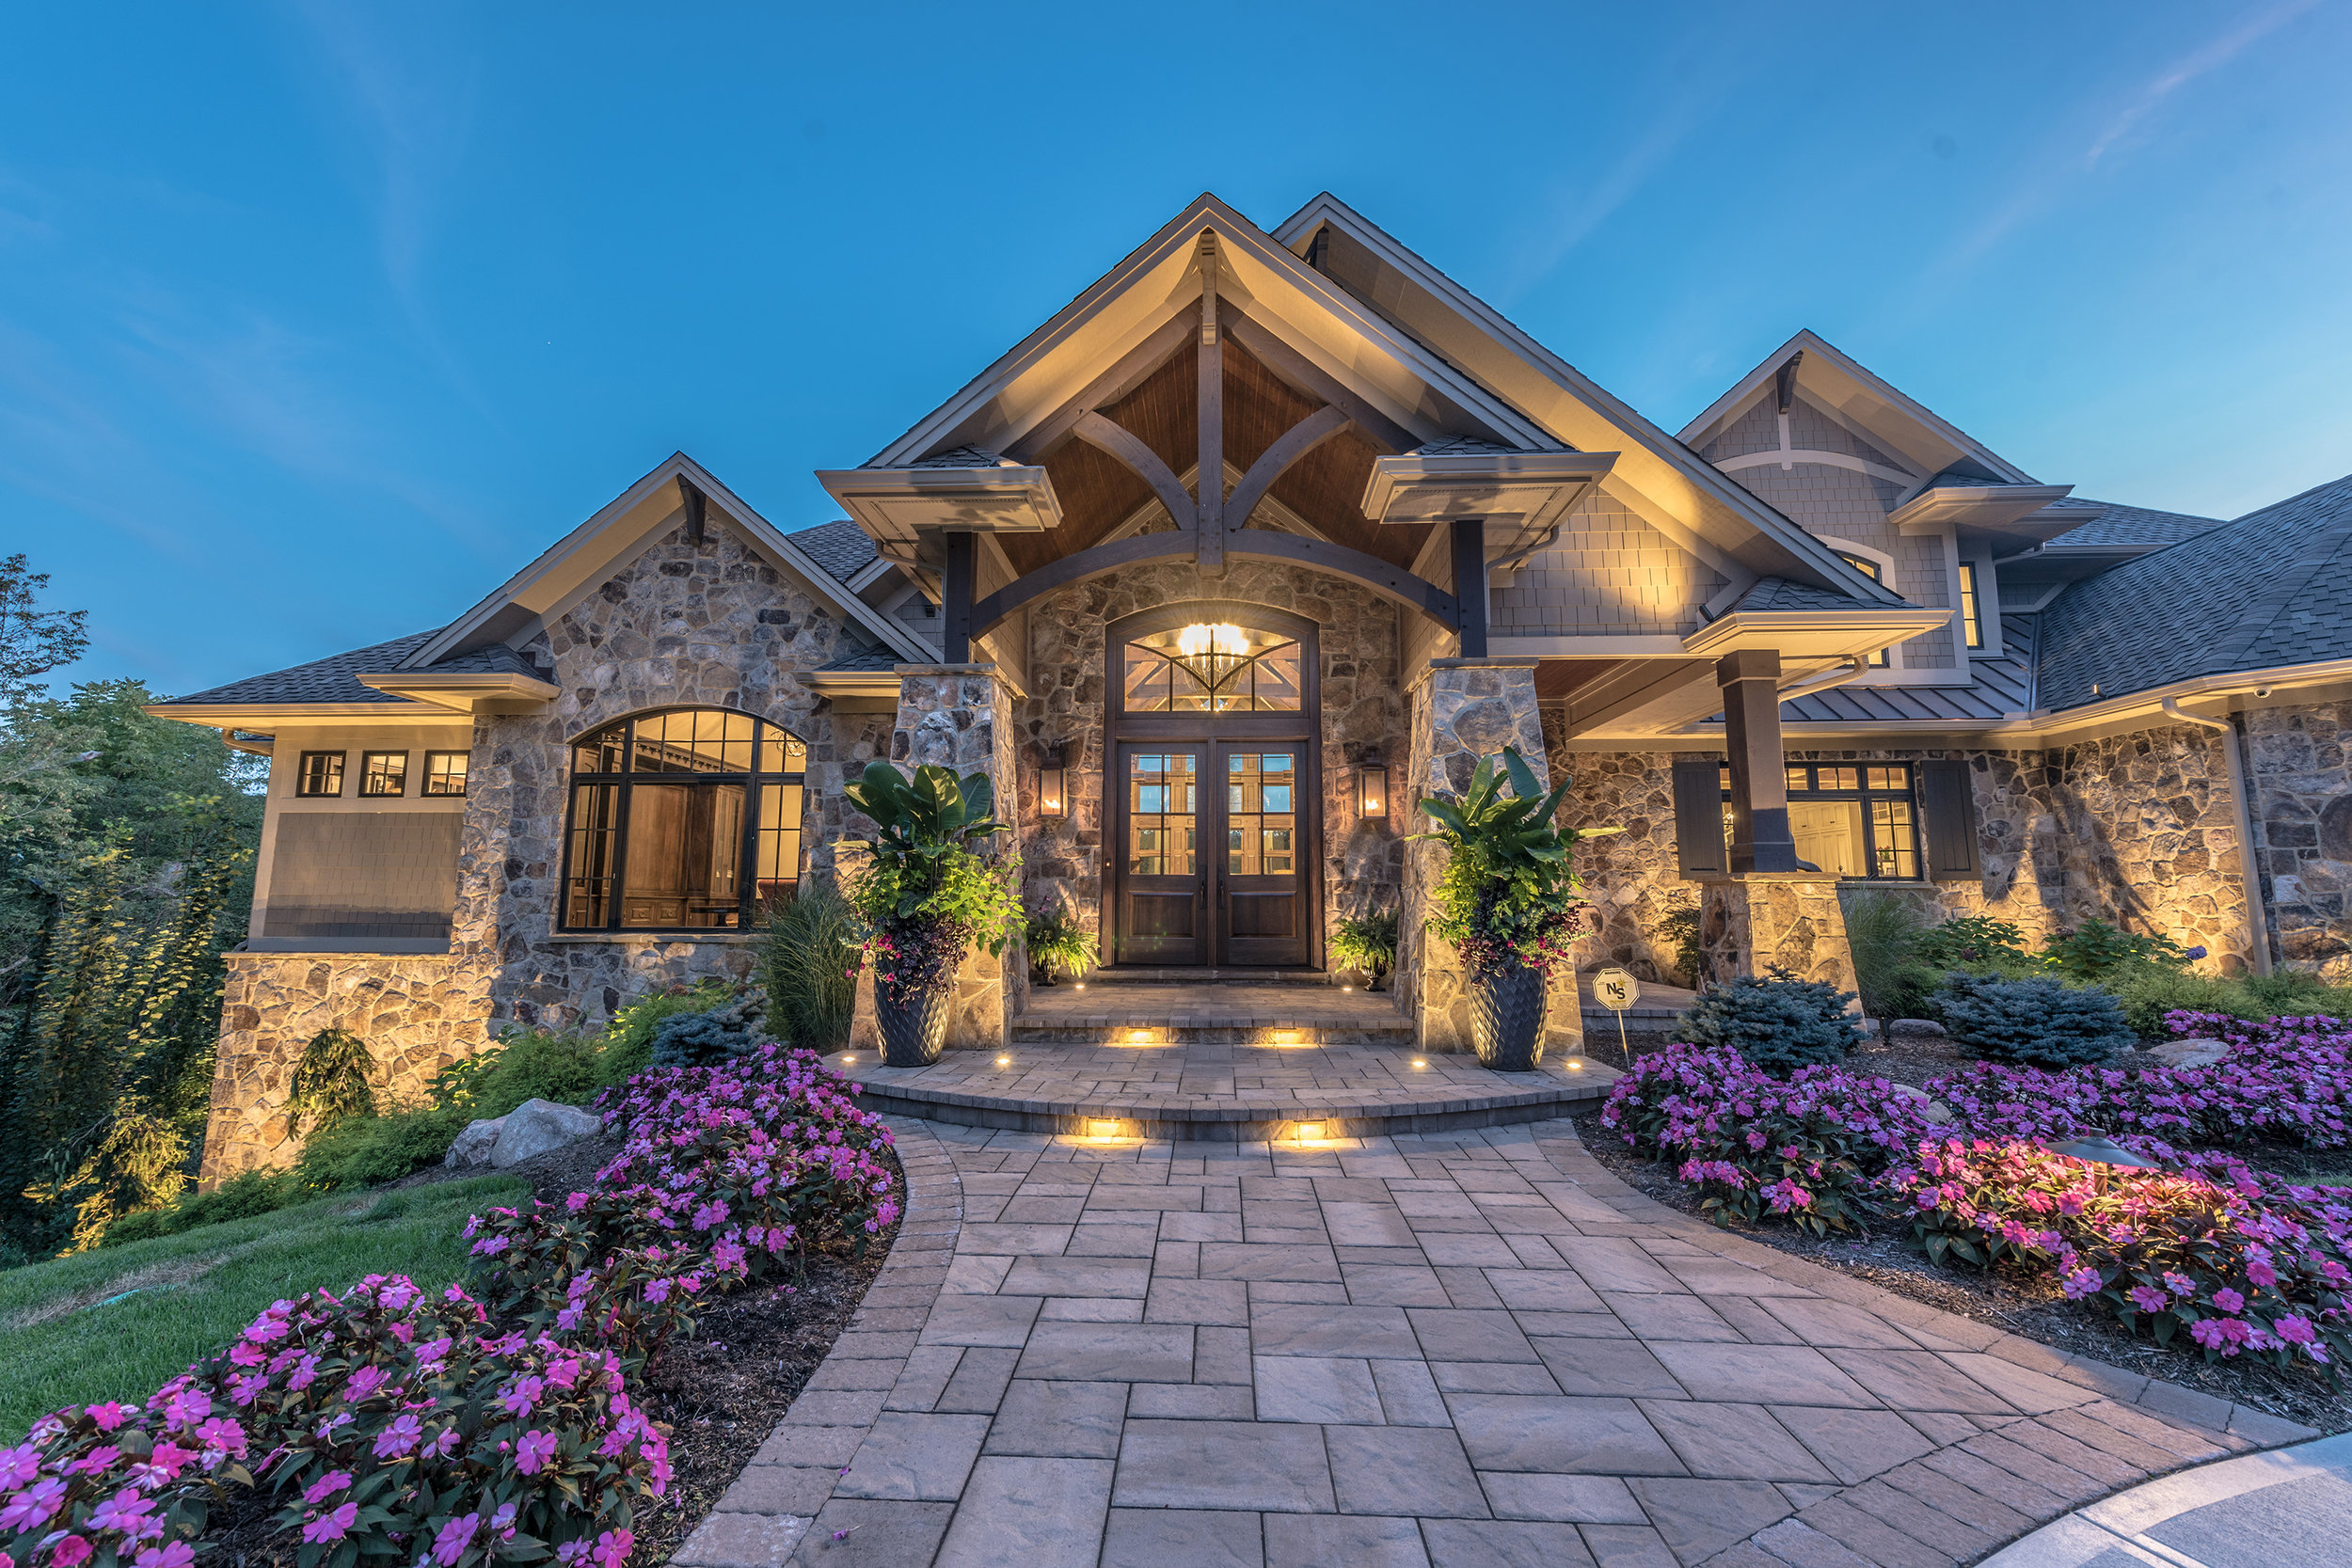 Daniel DeVol Custom Builder Inc. - Beavercreek Residence Woodridge 2.jpg